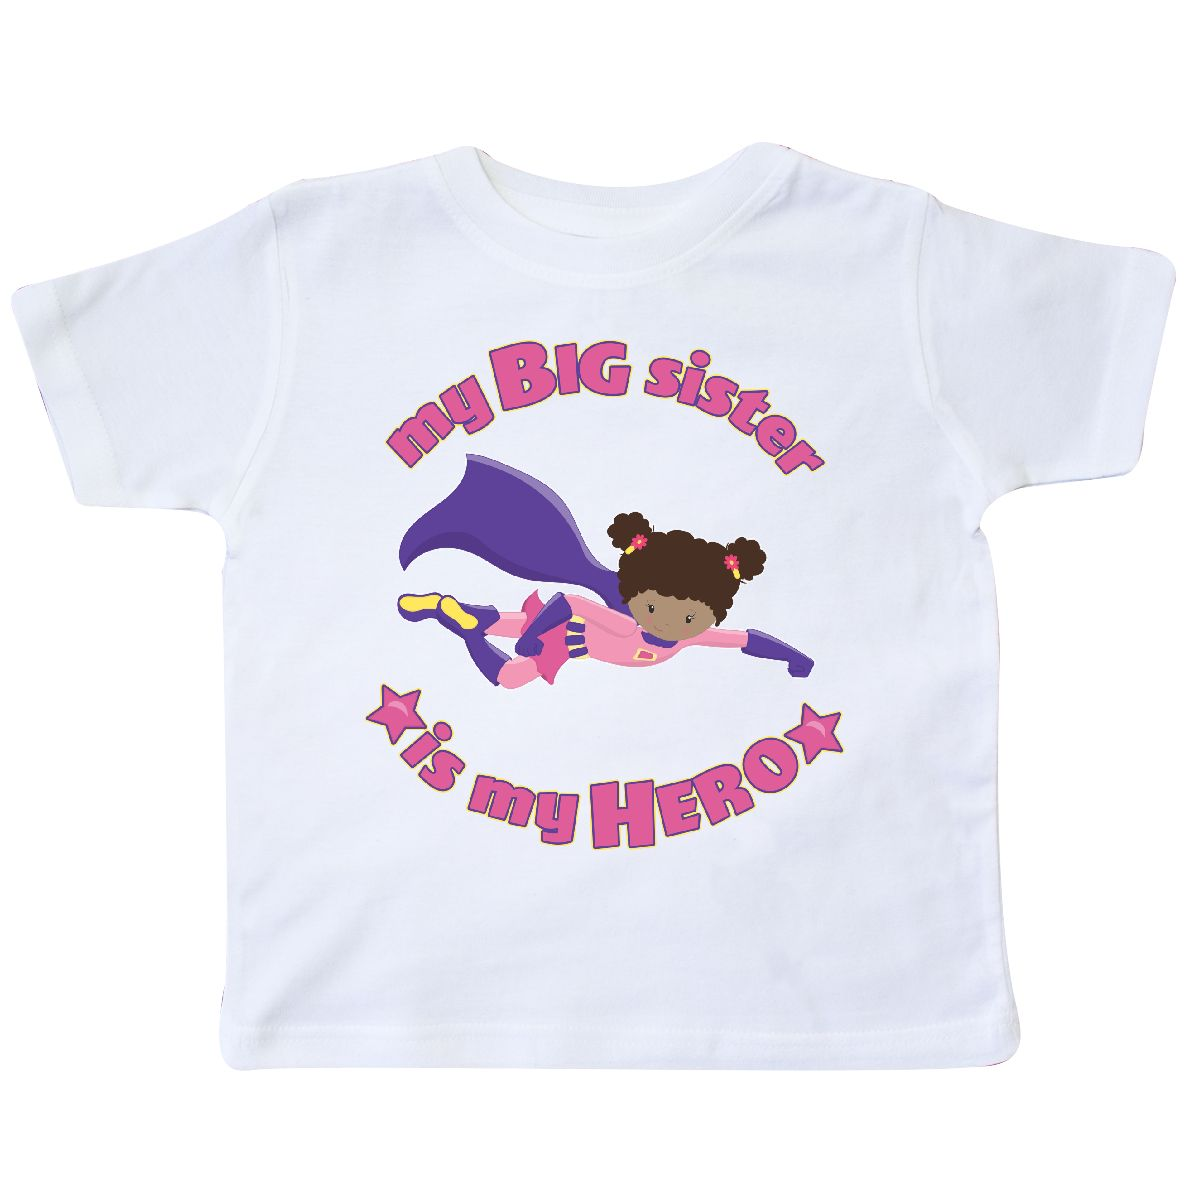 inktastic Loved by My Big Sis Toddler T-Shirt